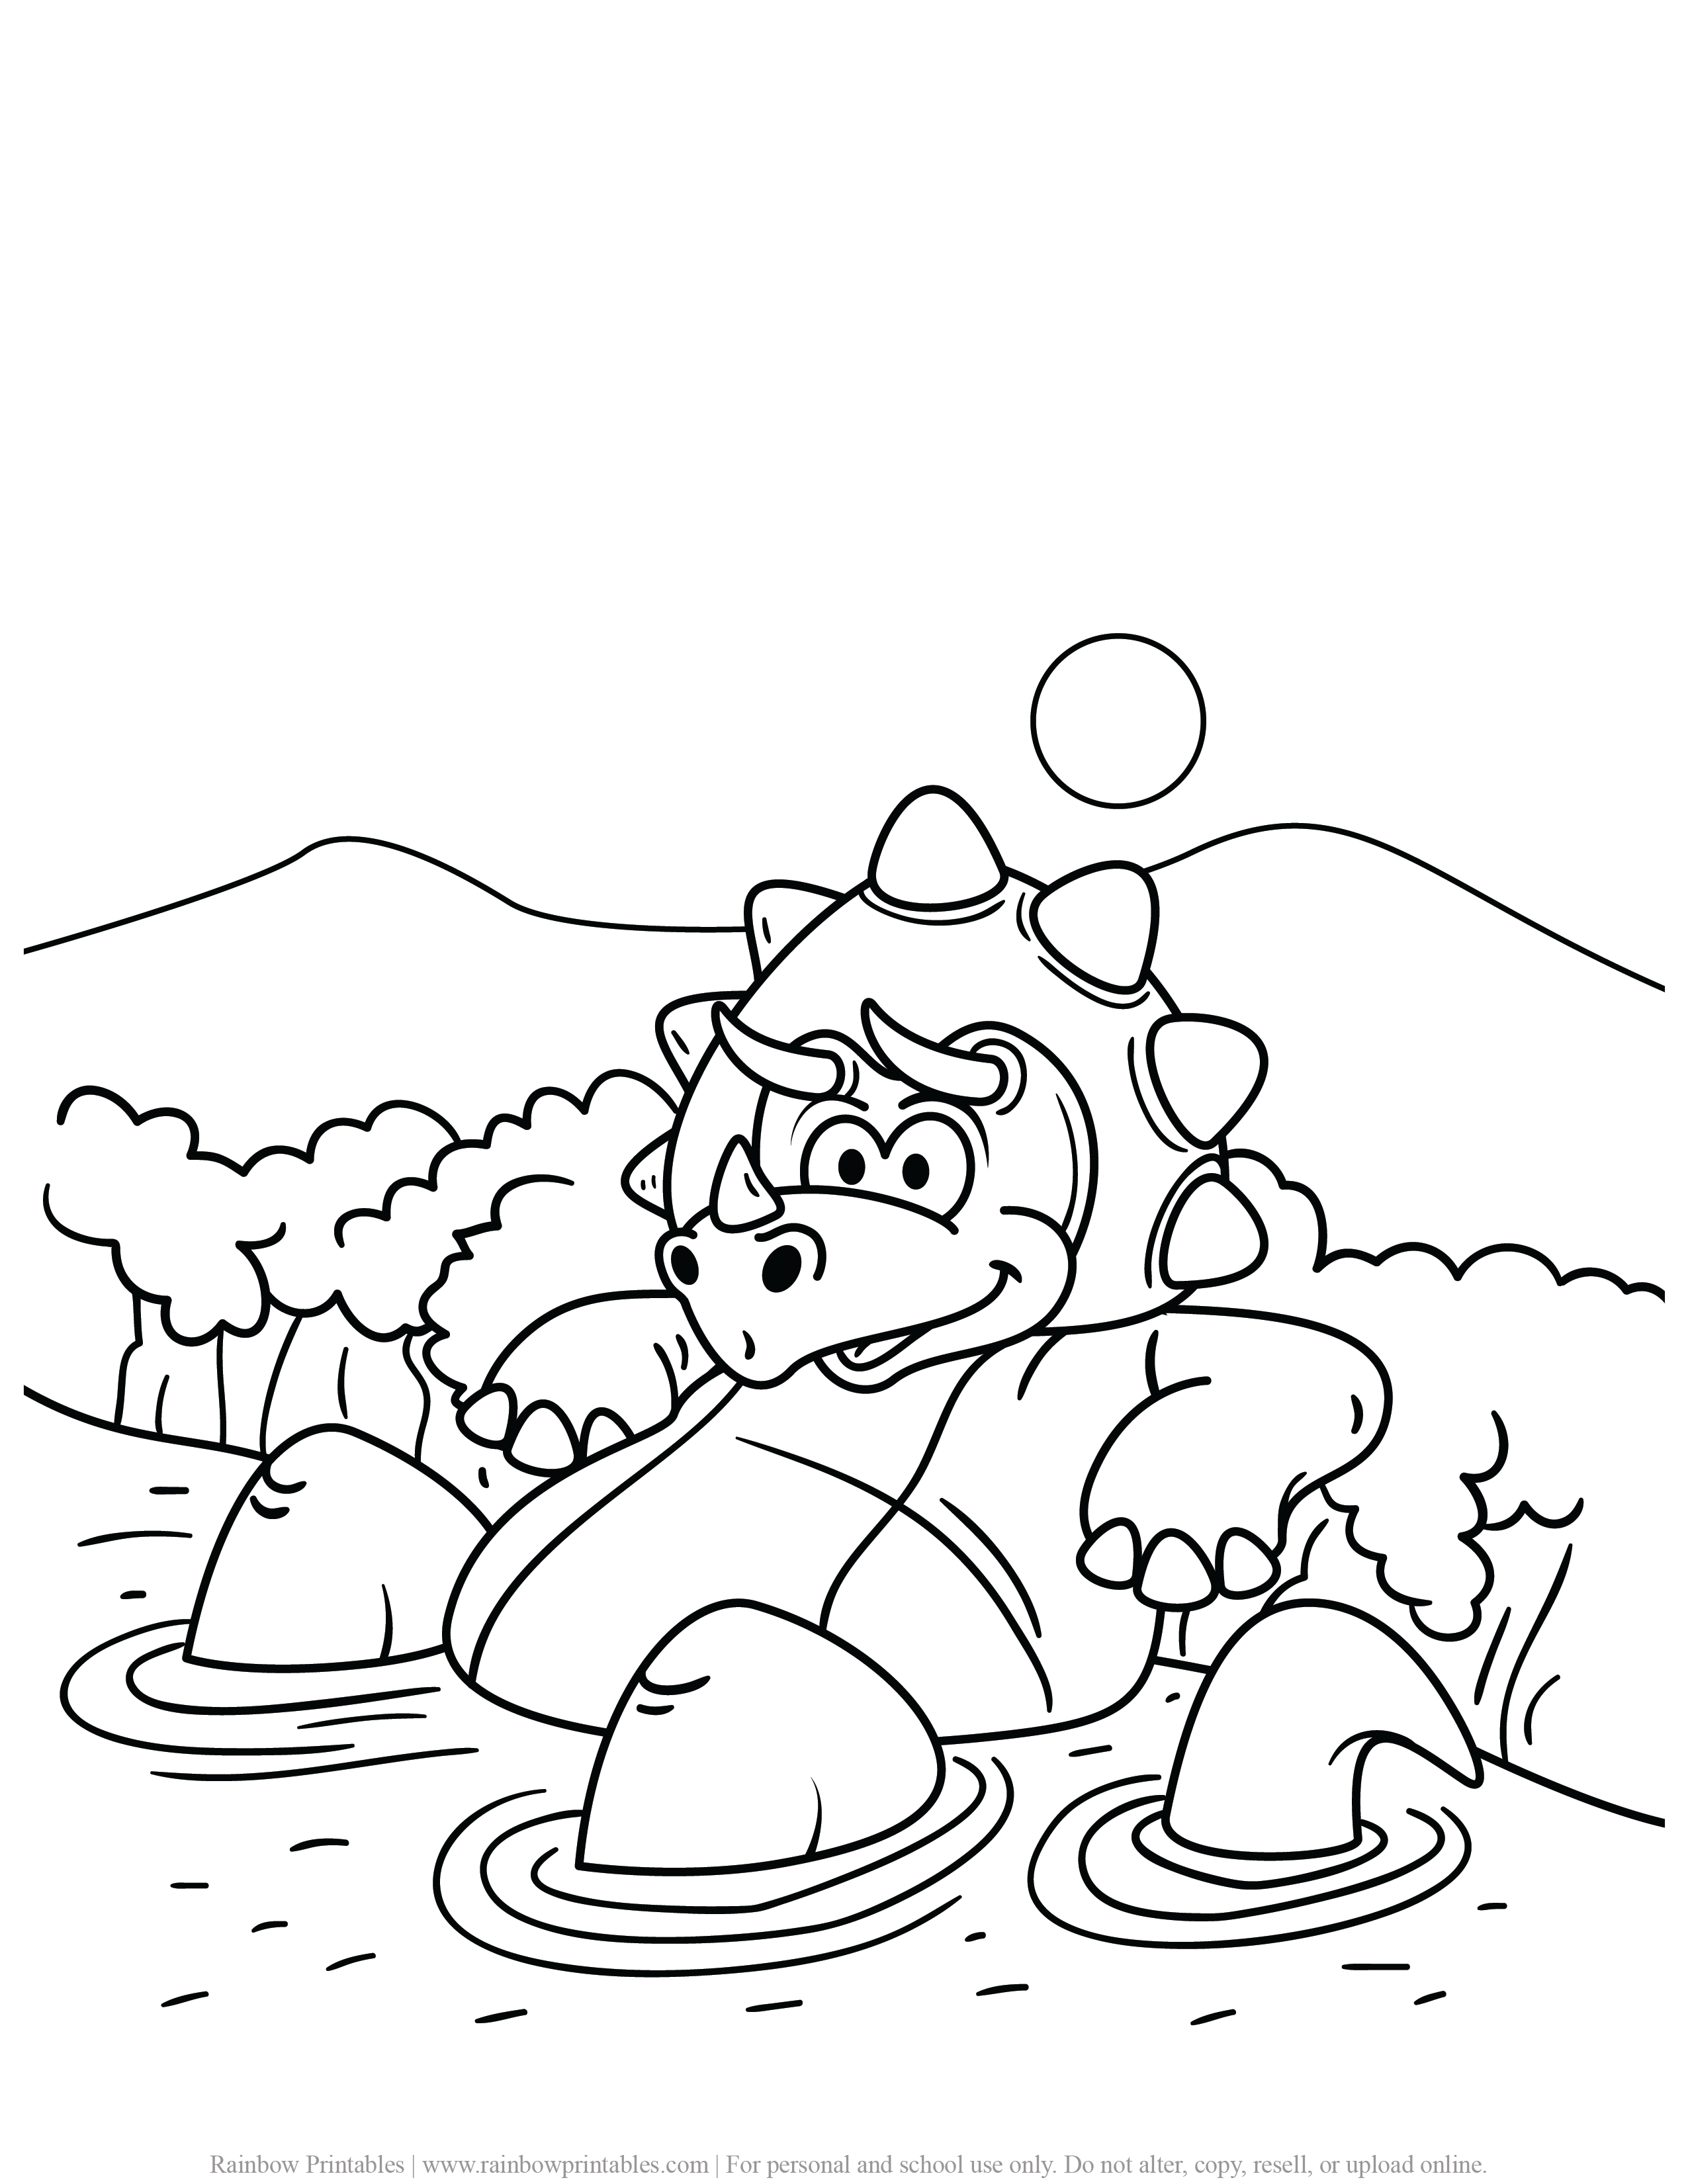 FREE DINOSAUR COLORING PAGES ACTIVITY FOR KIDS AND BOYS DINO DRAGON PRINTABLE-17